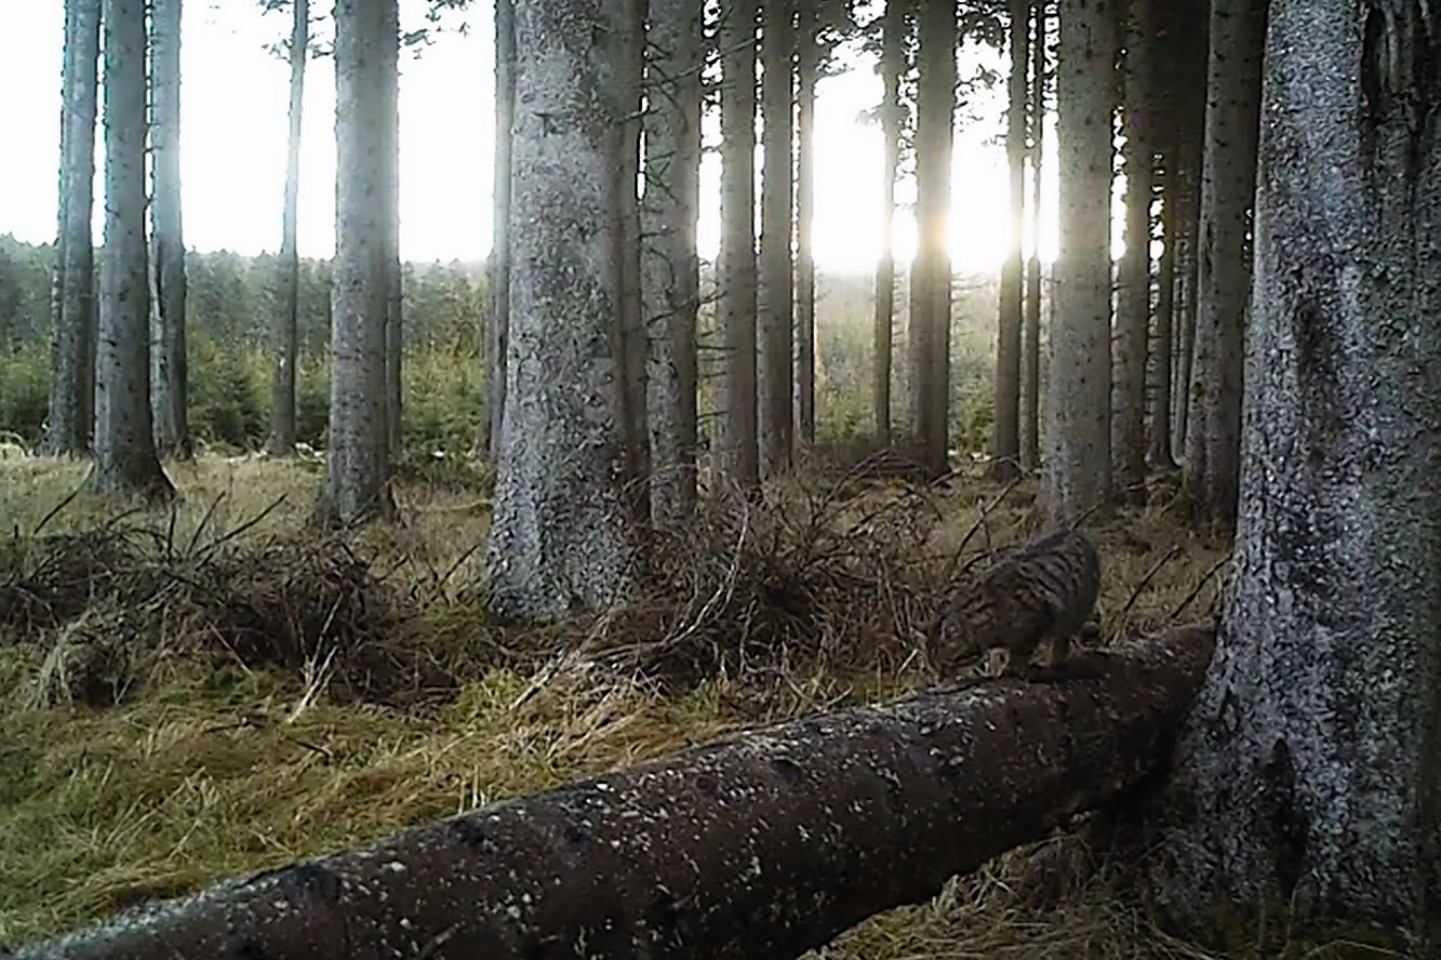 The animals roaming the woods of Aberdeenshire in footage captured by Kevin Bell.